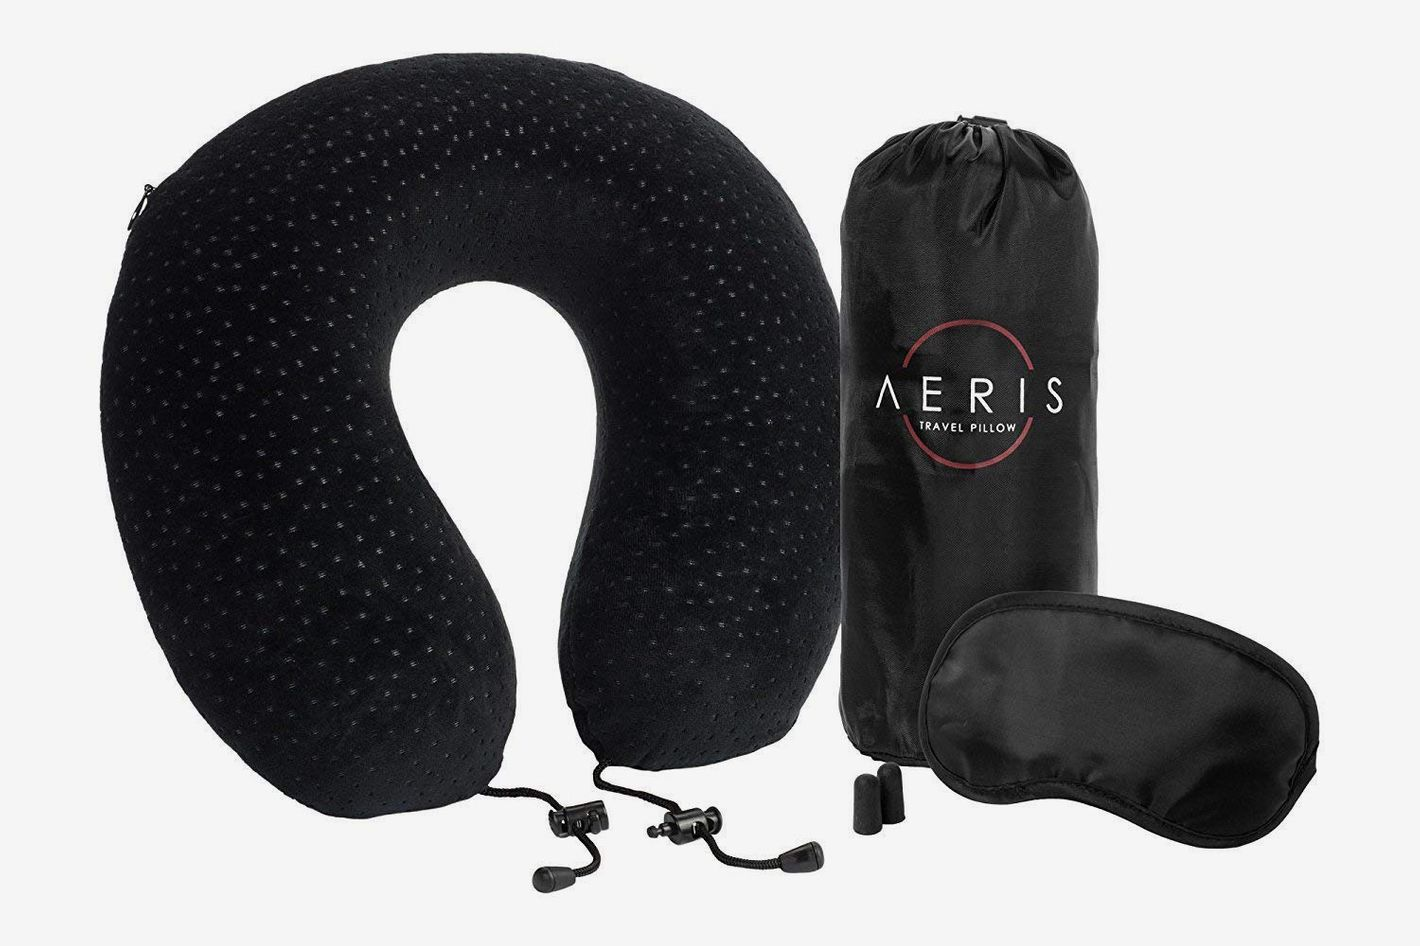 AERIS Travel Pillow for Restful Sleep